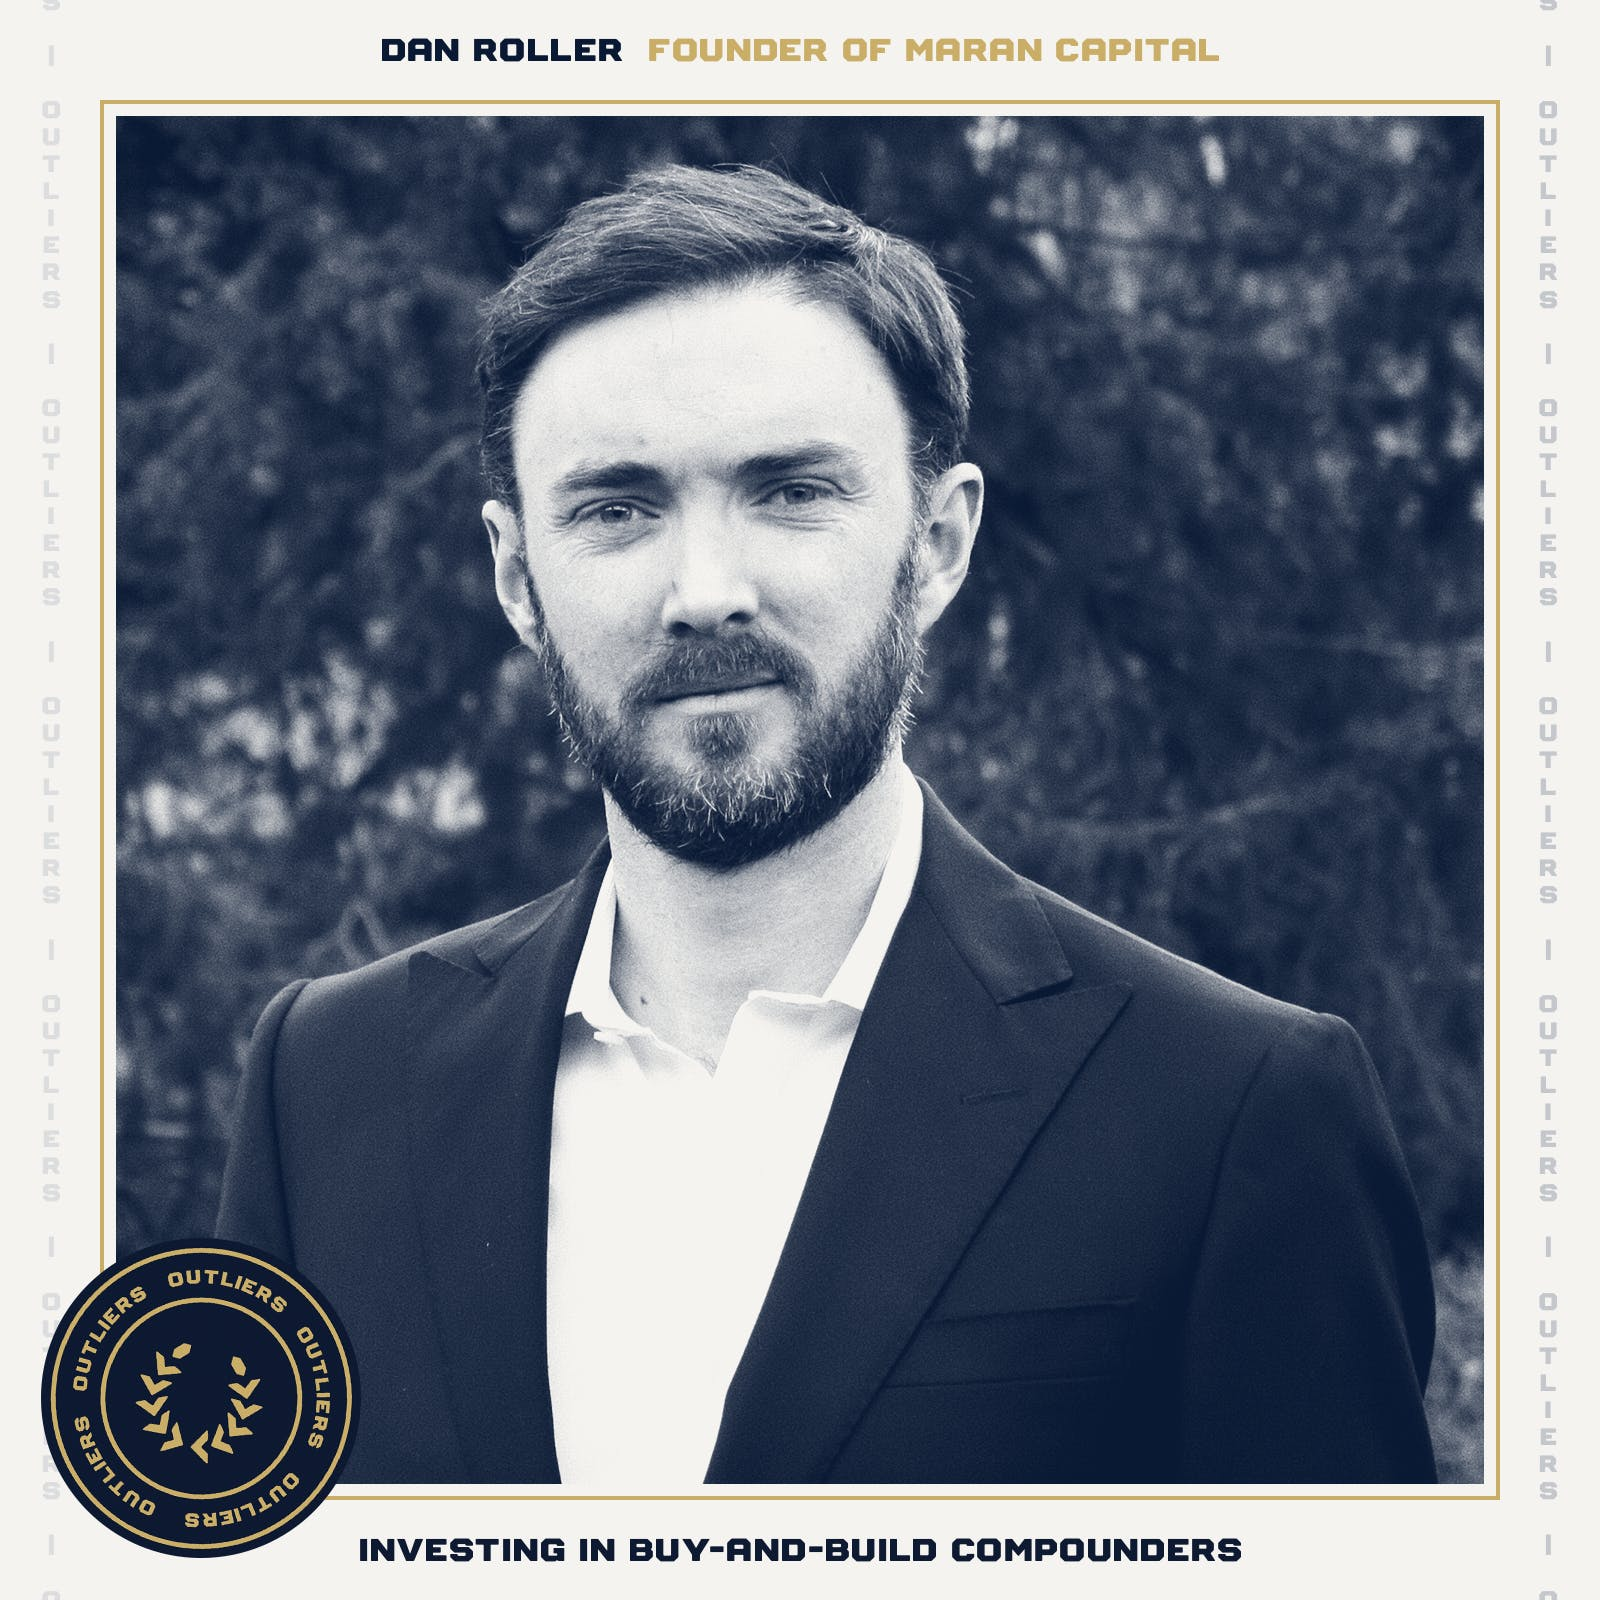 #21 Dan Roller: Founder of Maran Capital on Investing in Buy-and-Build Compounders